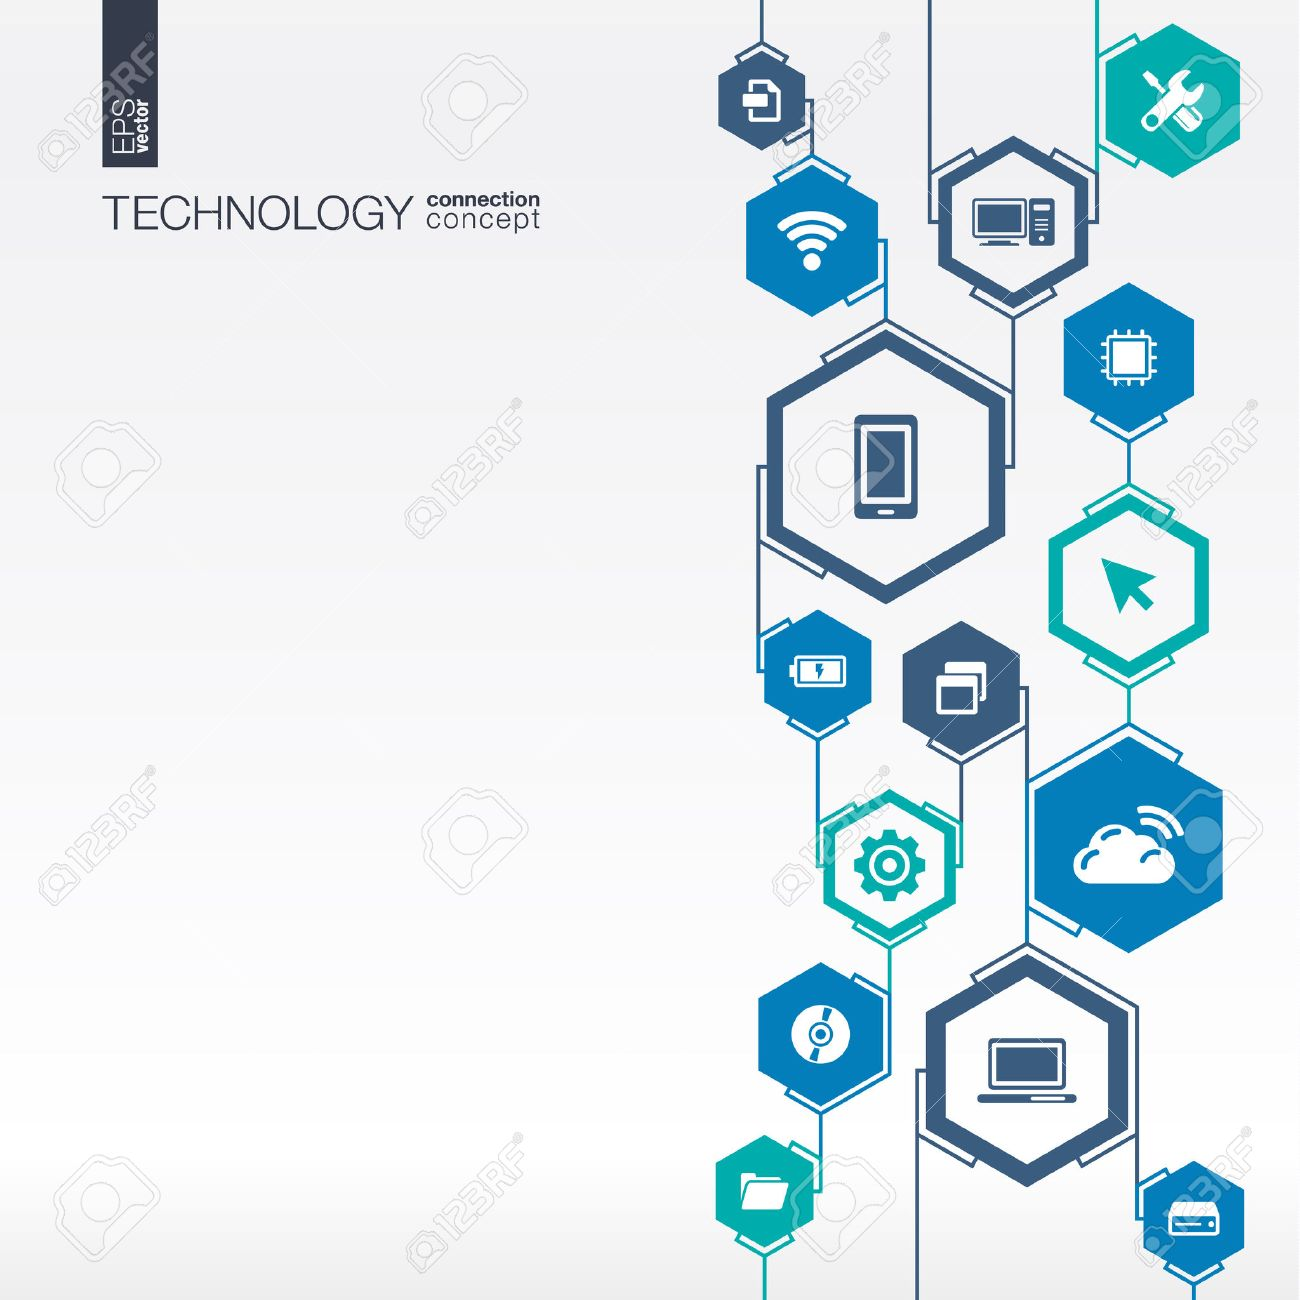 Technology network. Hexagon abstract background with lines, integrate flat icons. Connected symbols for digital, connect, communicate, social media and global concepts. Vector interactive illustration - 43377675